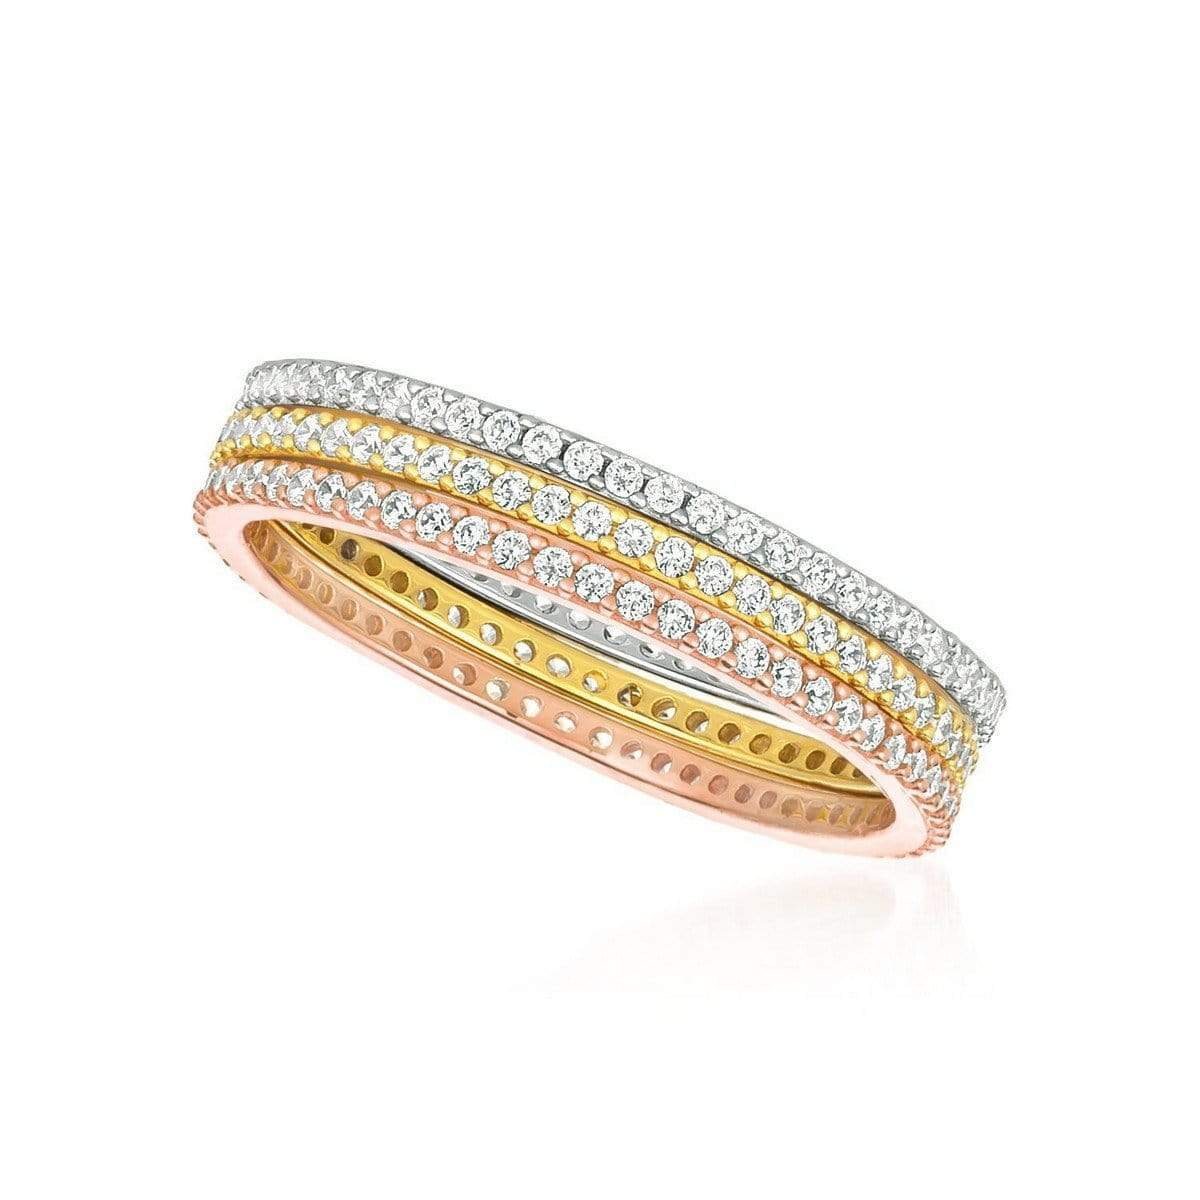 Crislu Jewelry CRISLU Tricolor Stunning Stacks Set 4mm - Size 8